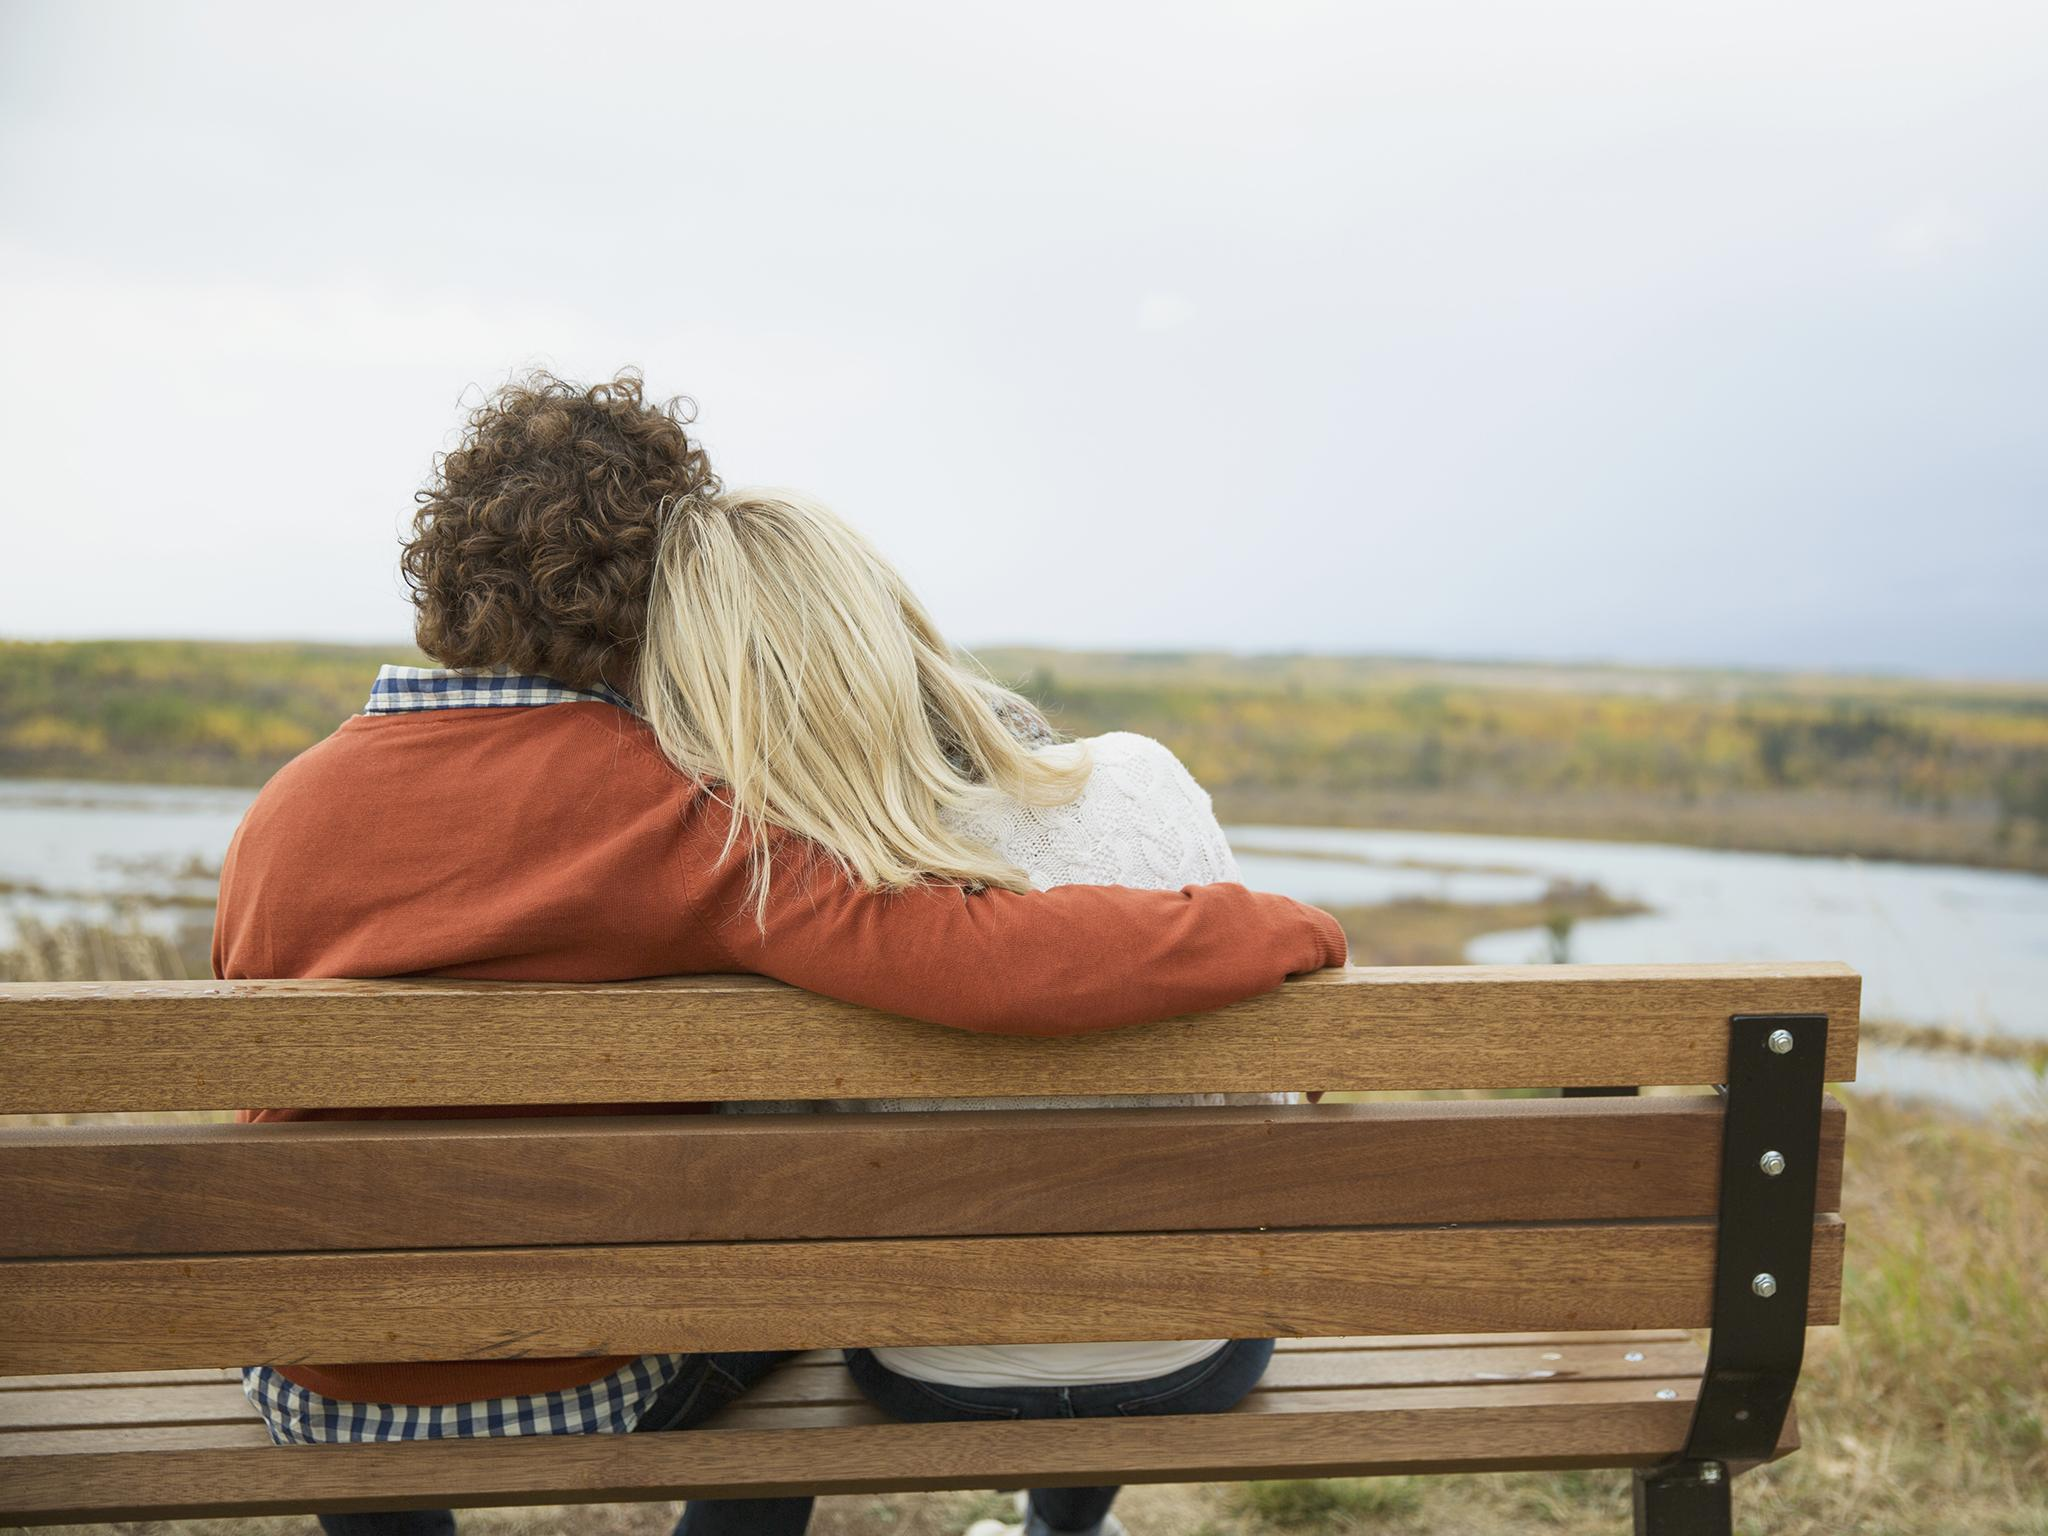 A top divorce lawyer reveals the 3 biggest mistakes married couples make